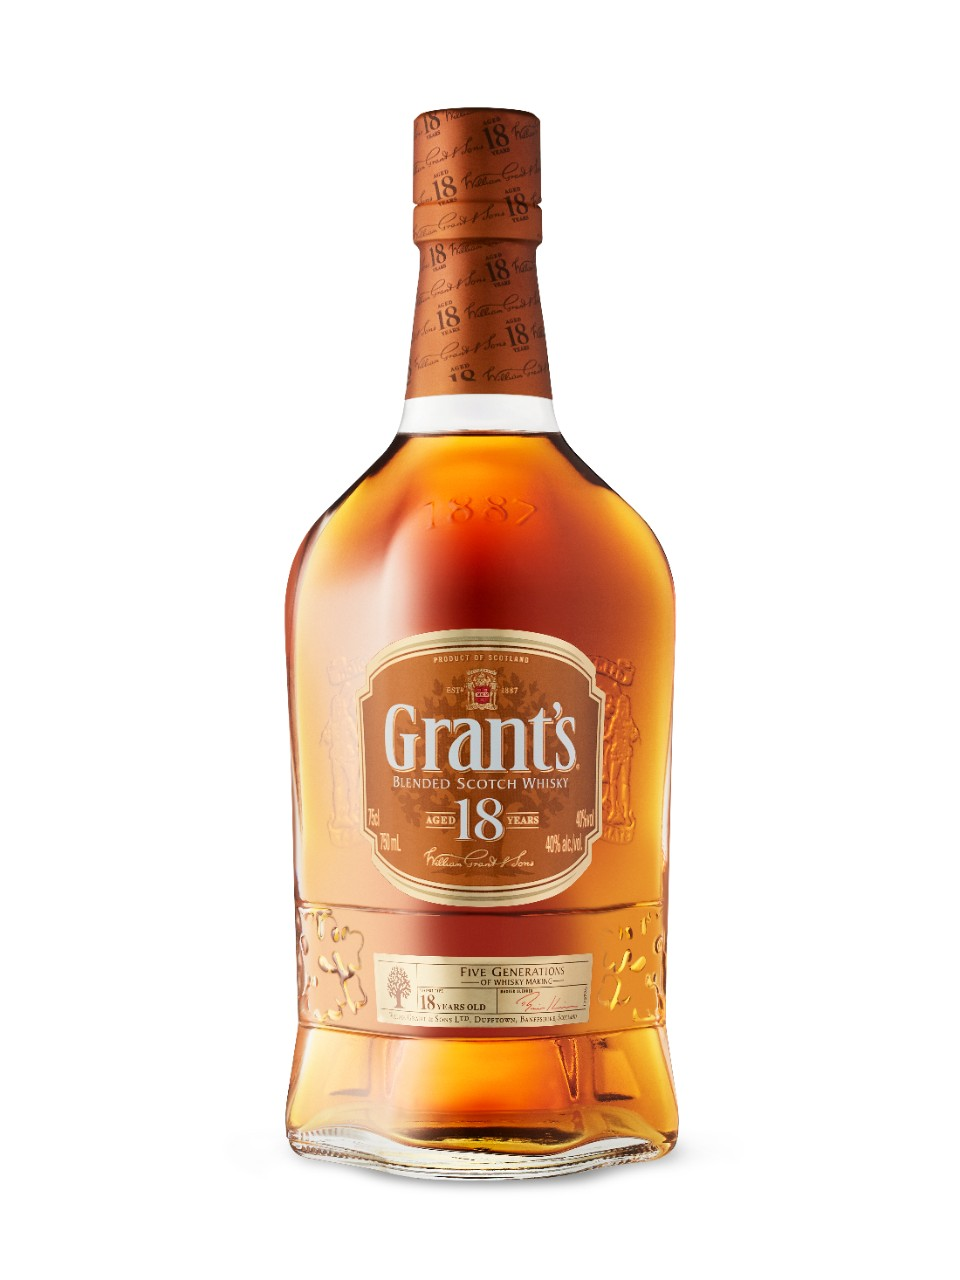 Grant's 18 Year Old Scotch Whisky